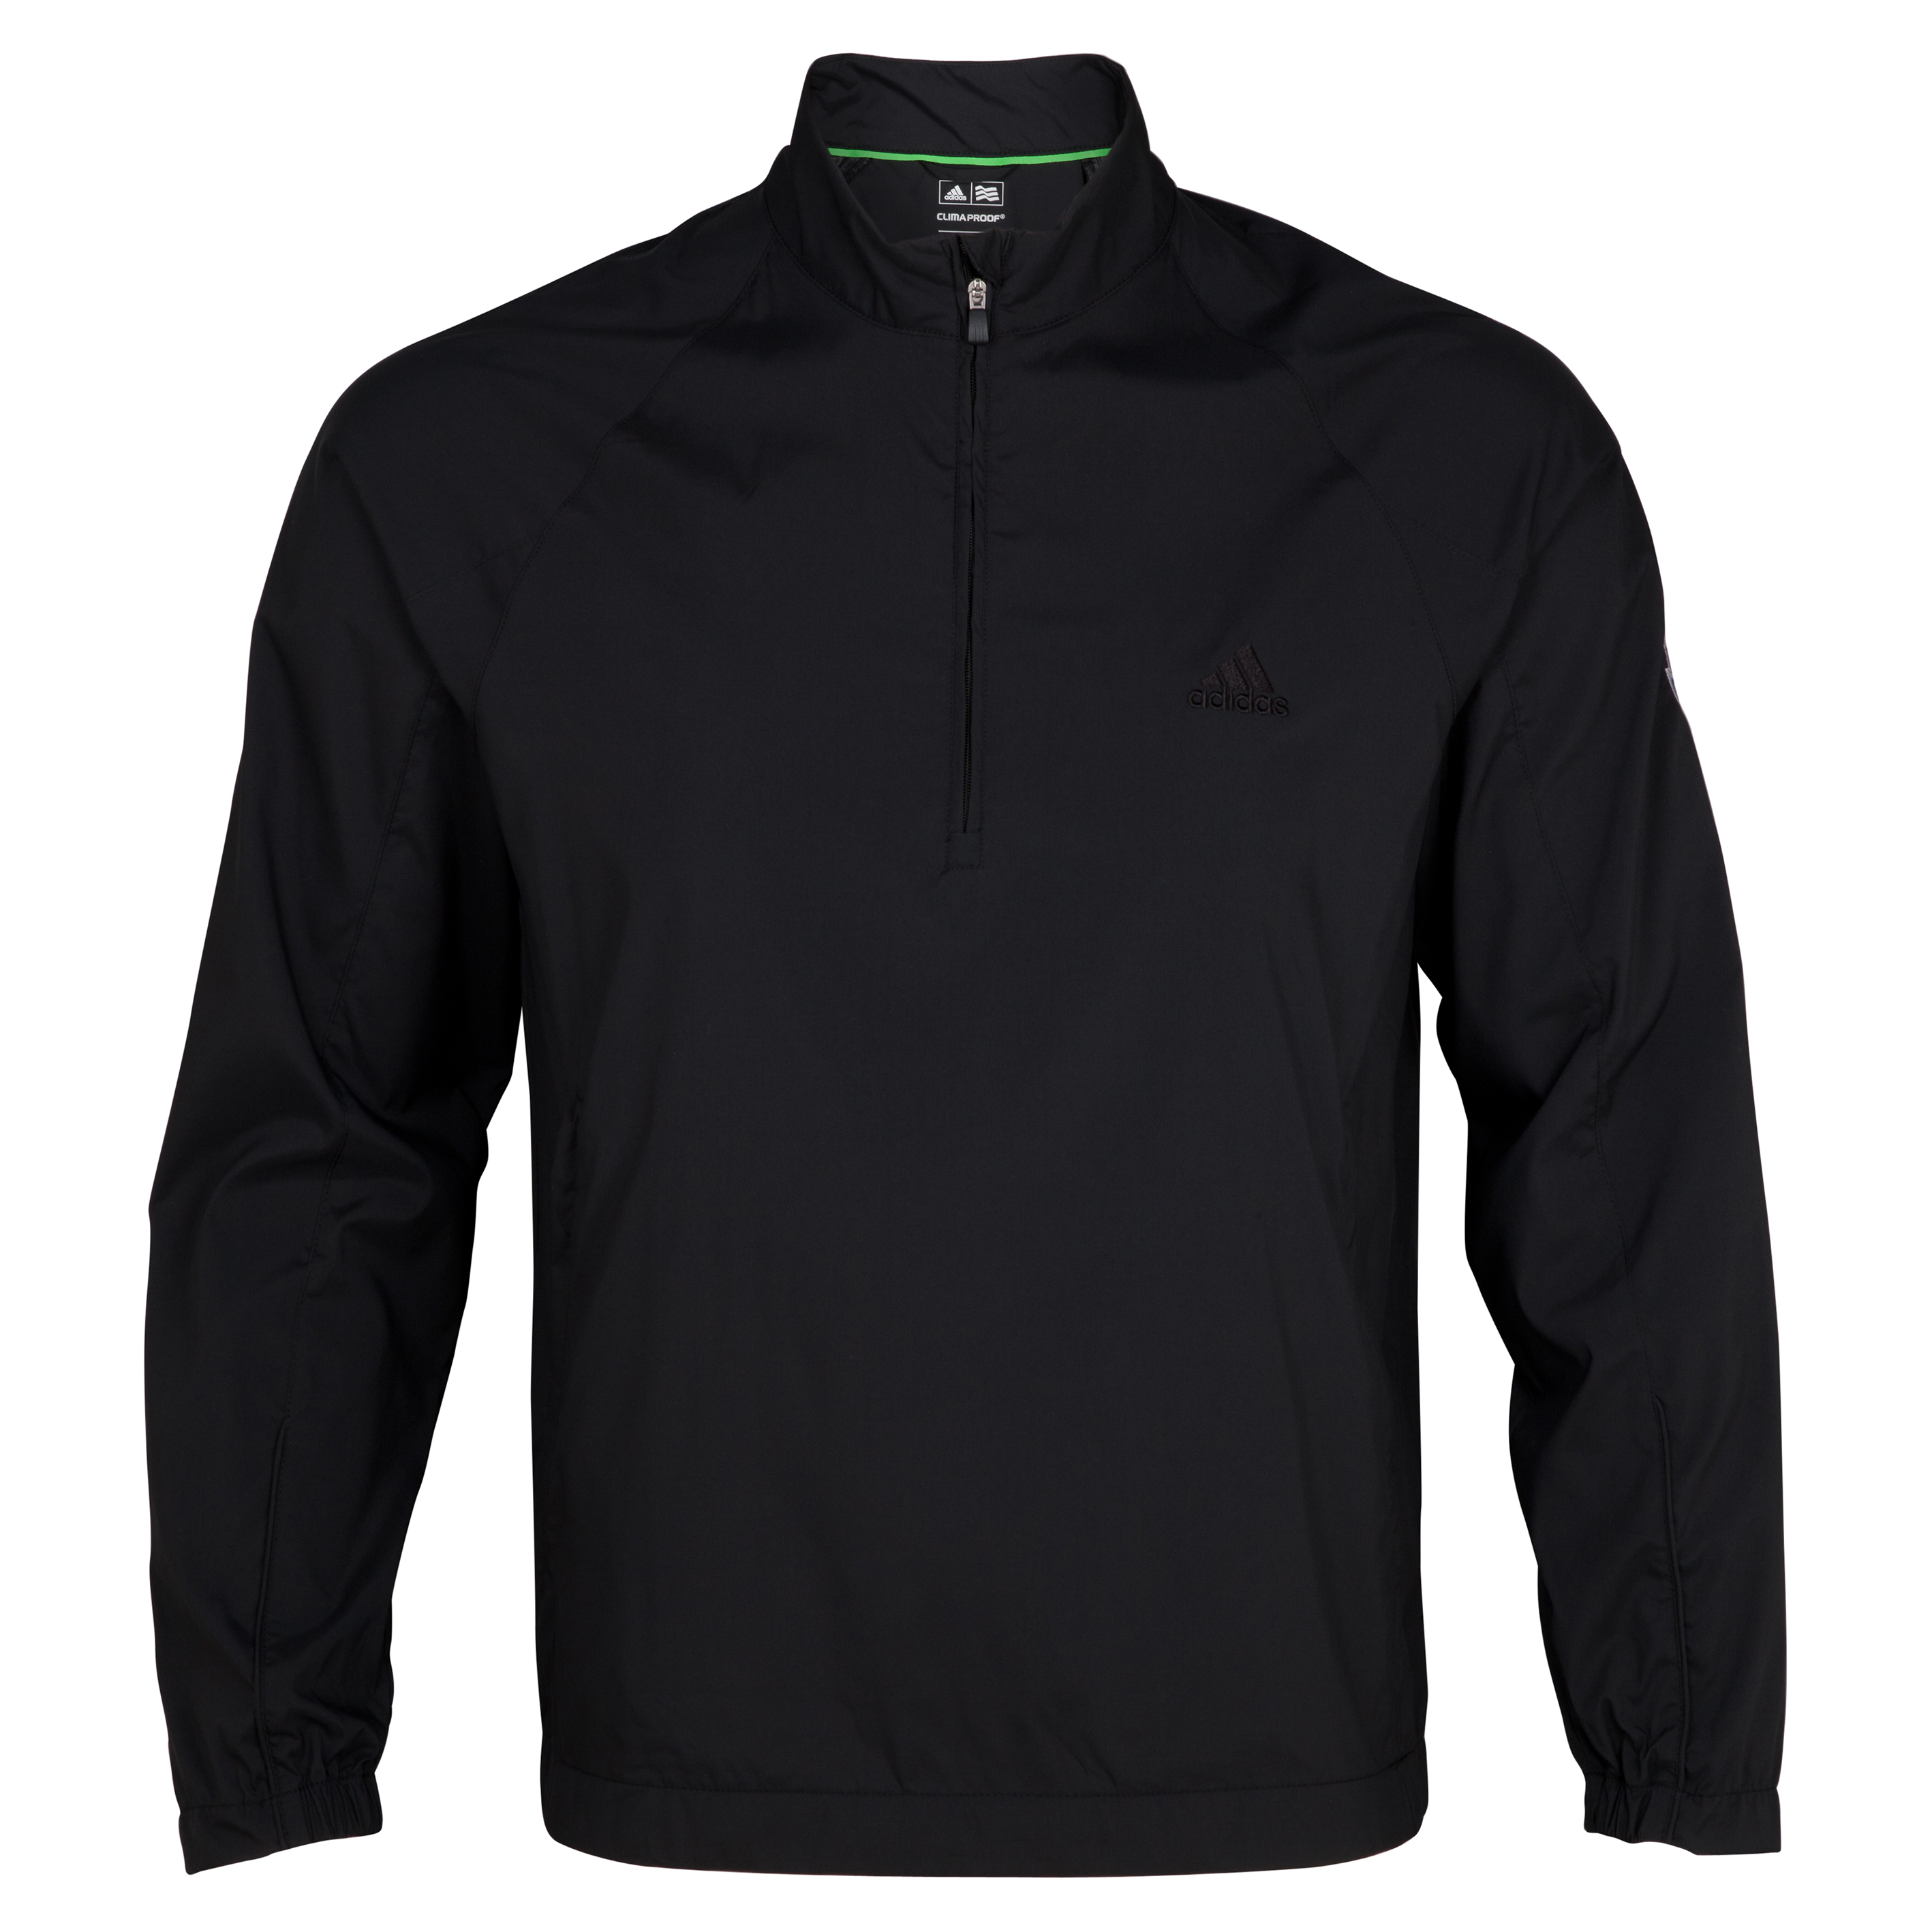 The 2014 Ryder Cup adidas ClimaProof Wind Long Sleeve Shirt - Black/Black